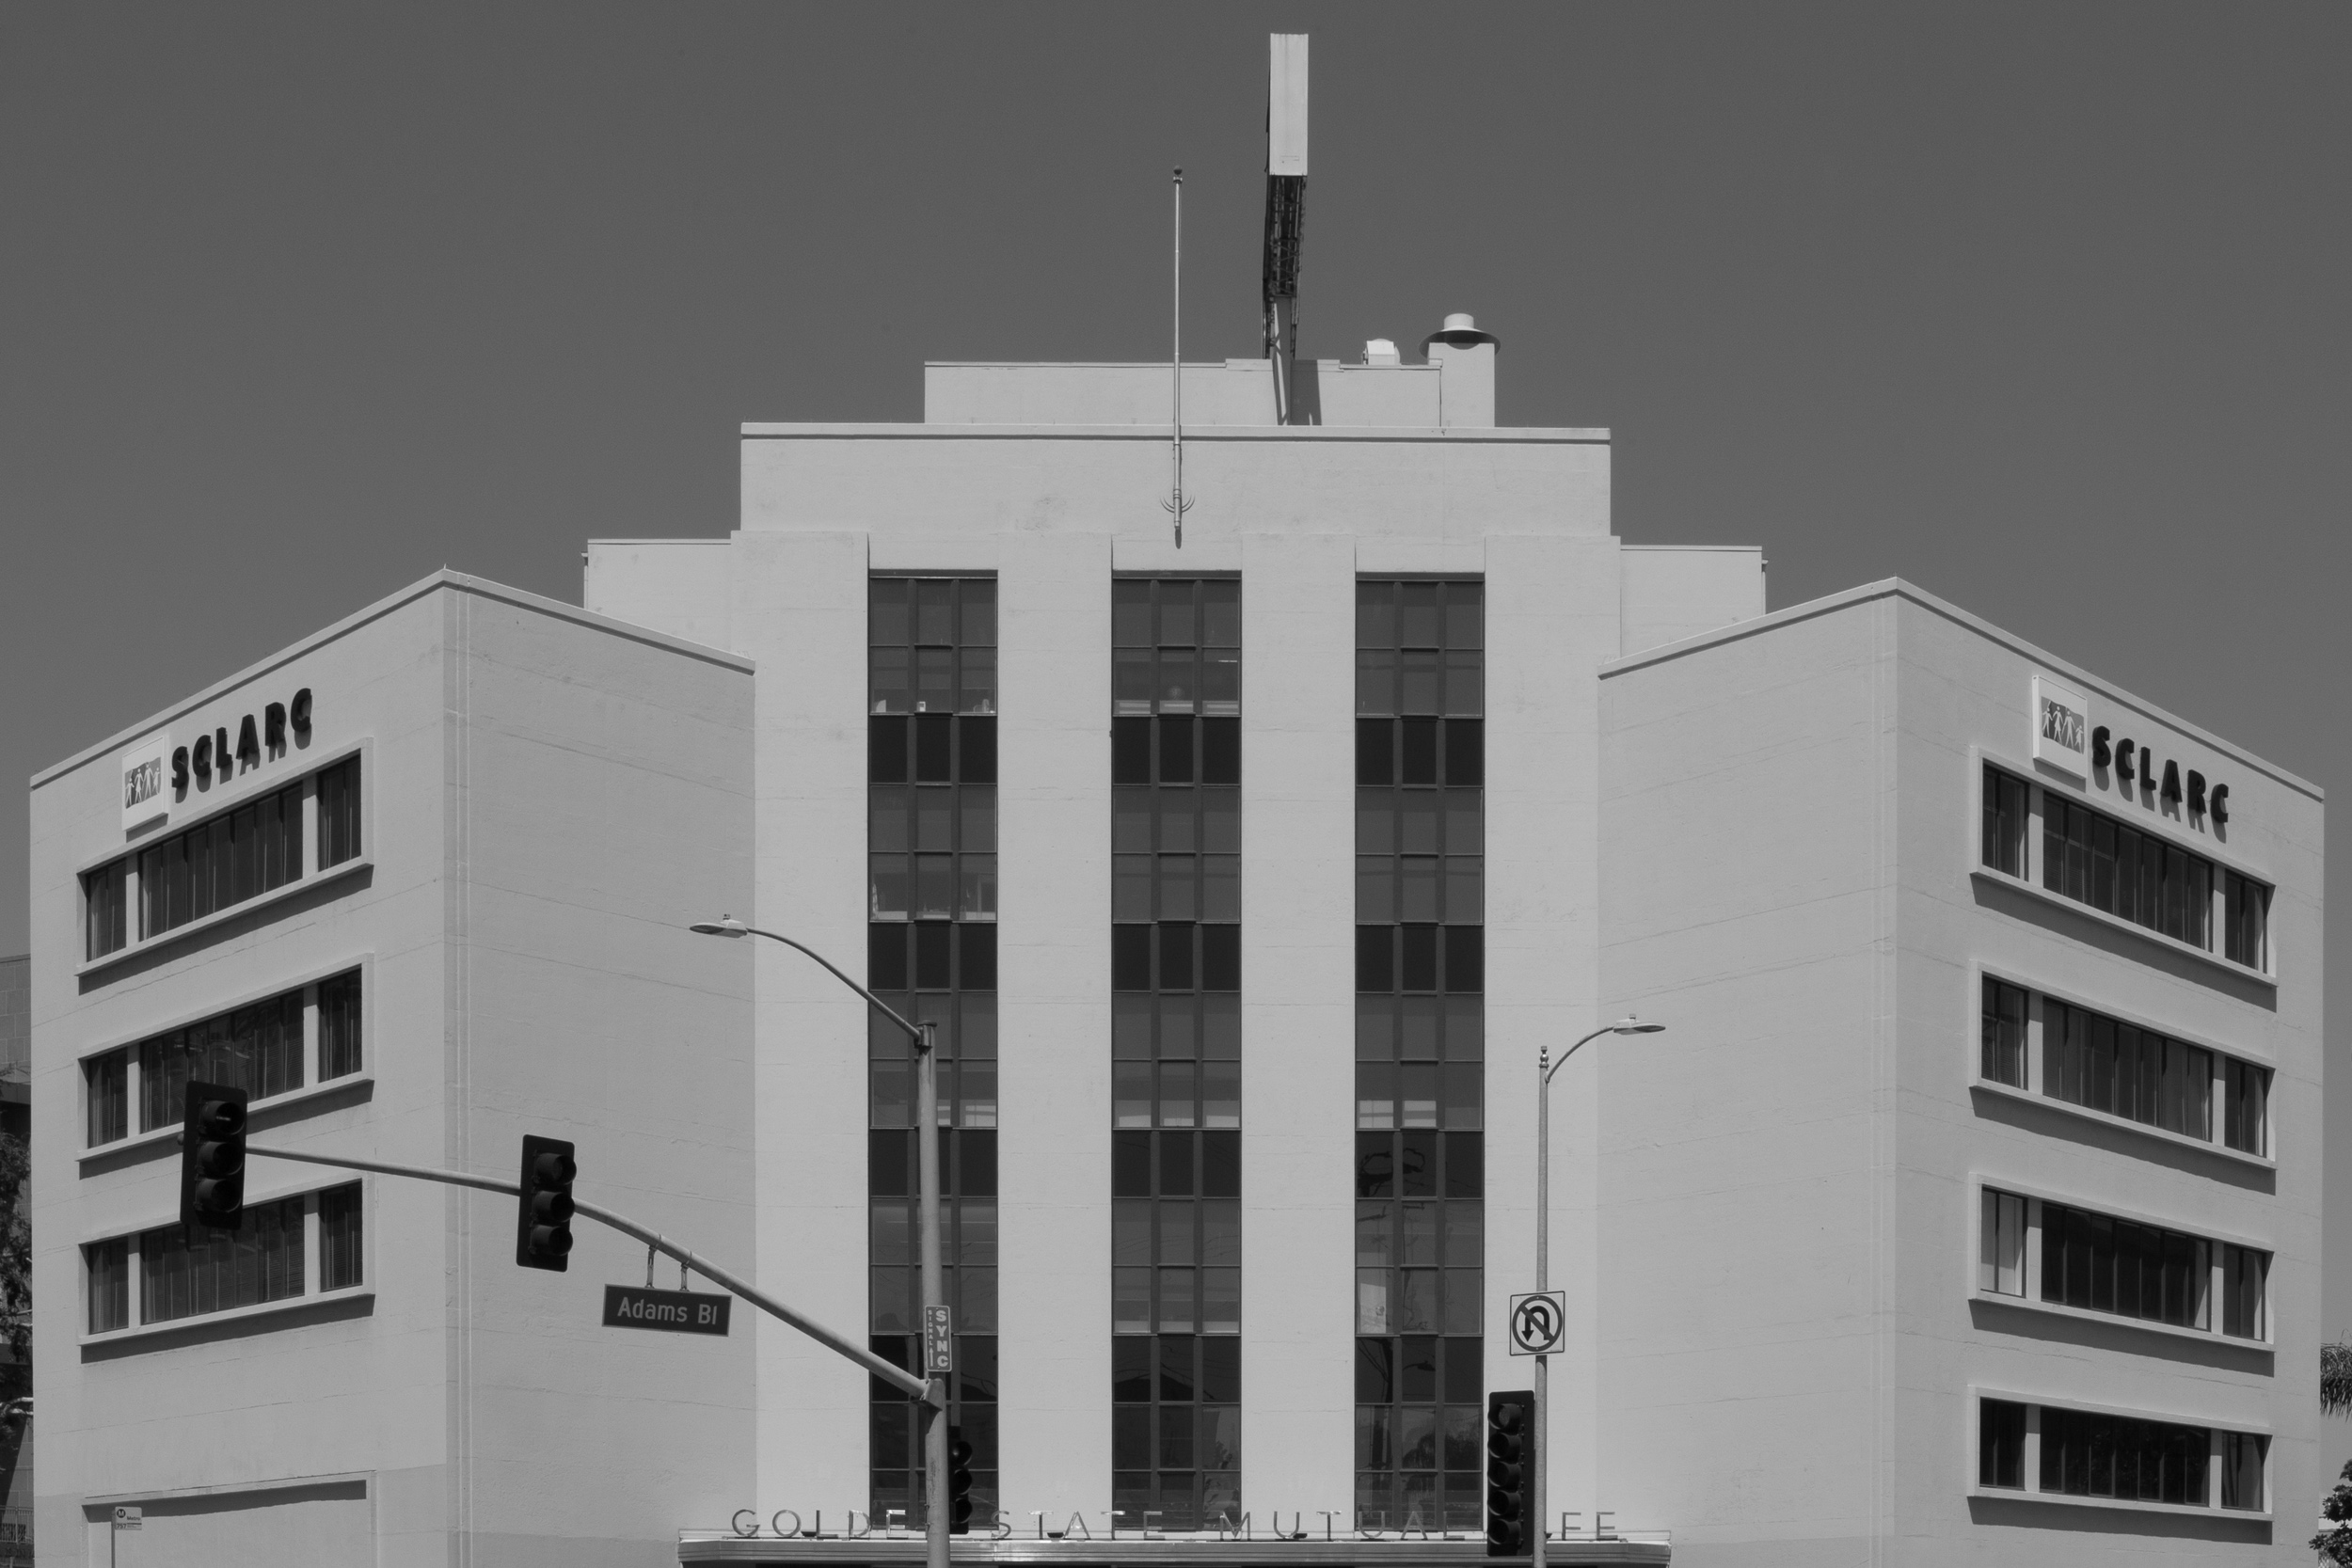 From the Golden State Mutual Life Insurance Company building, Los Angeles, California